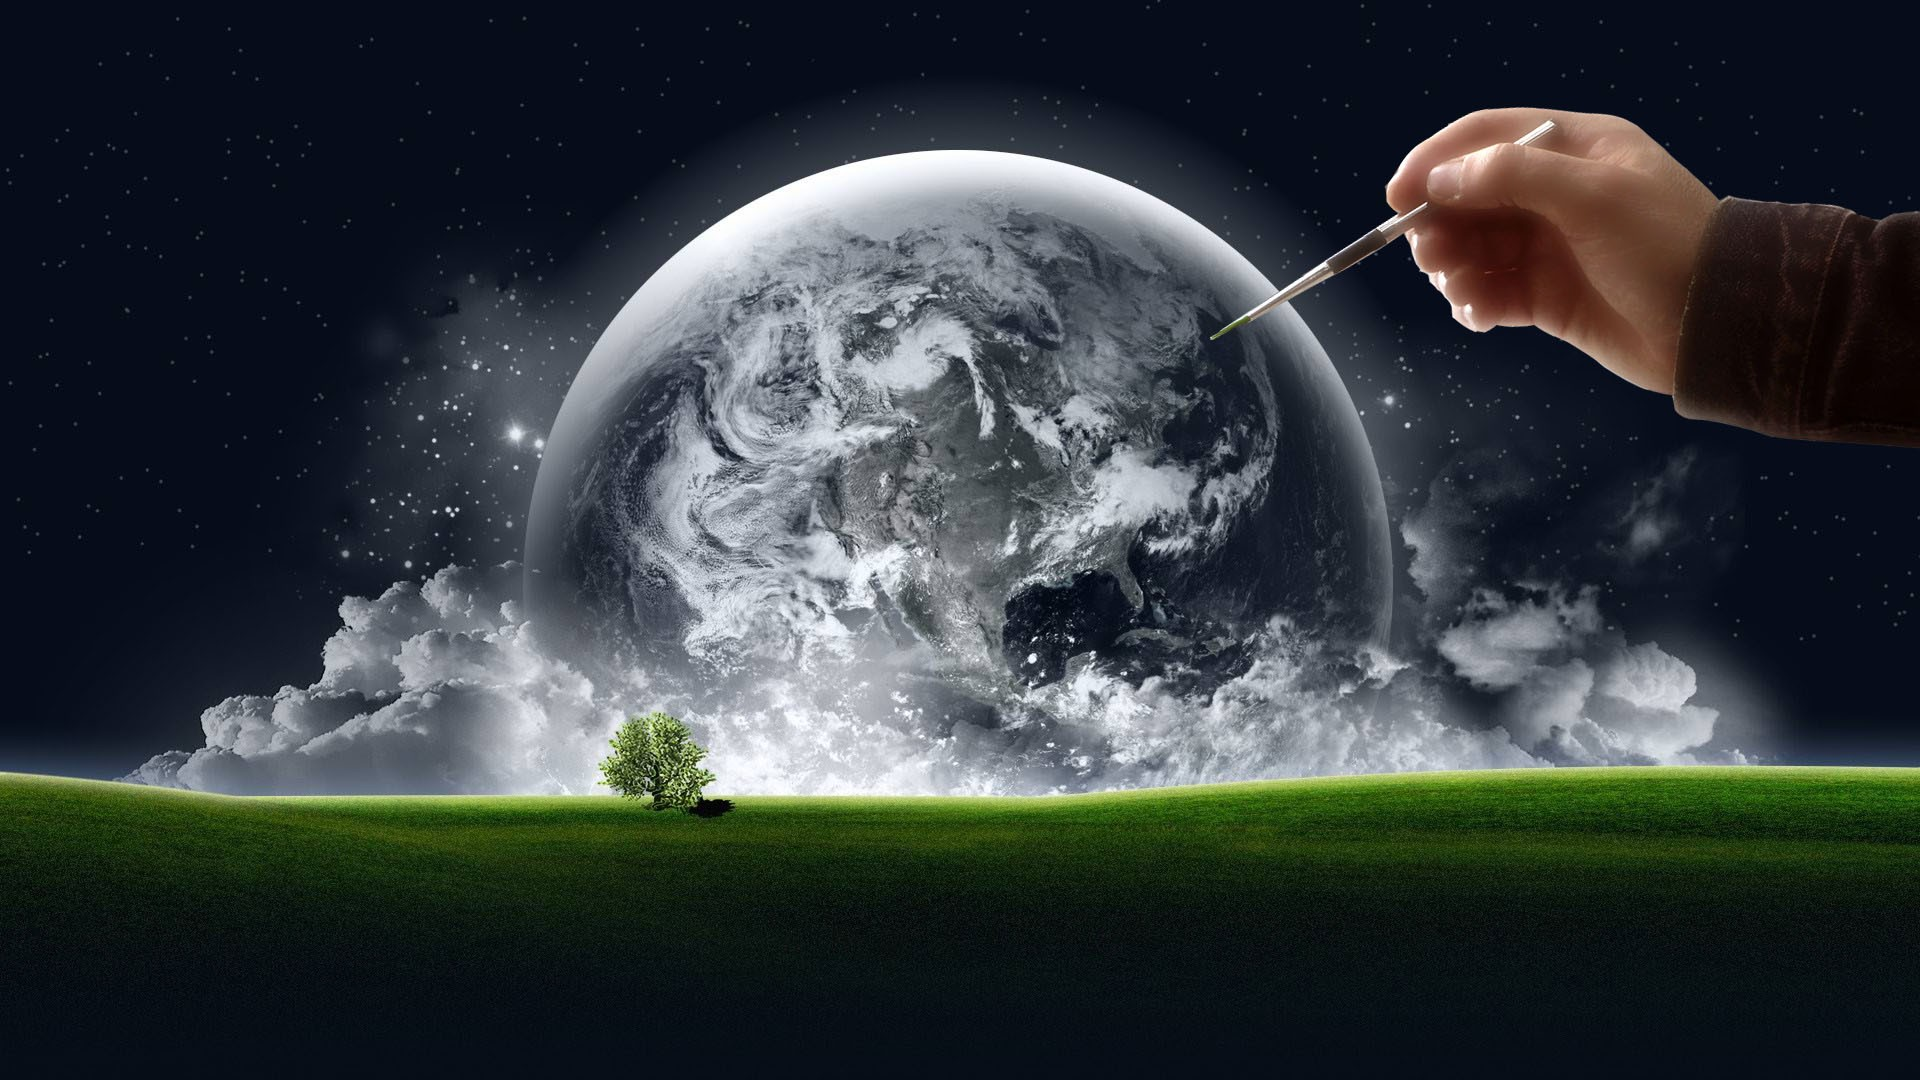 Clouds-Trees-Stars-World-Hands-Grass-Earth-Artwork-1920x1080px-Background-clouds-Clip-Art-wallpaper-wp3803857